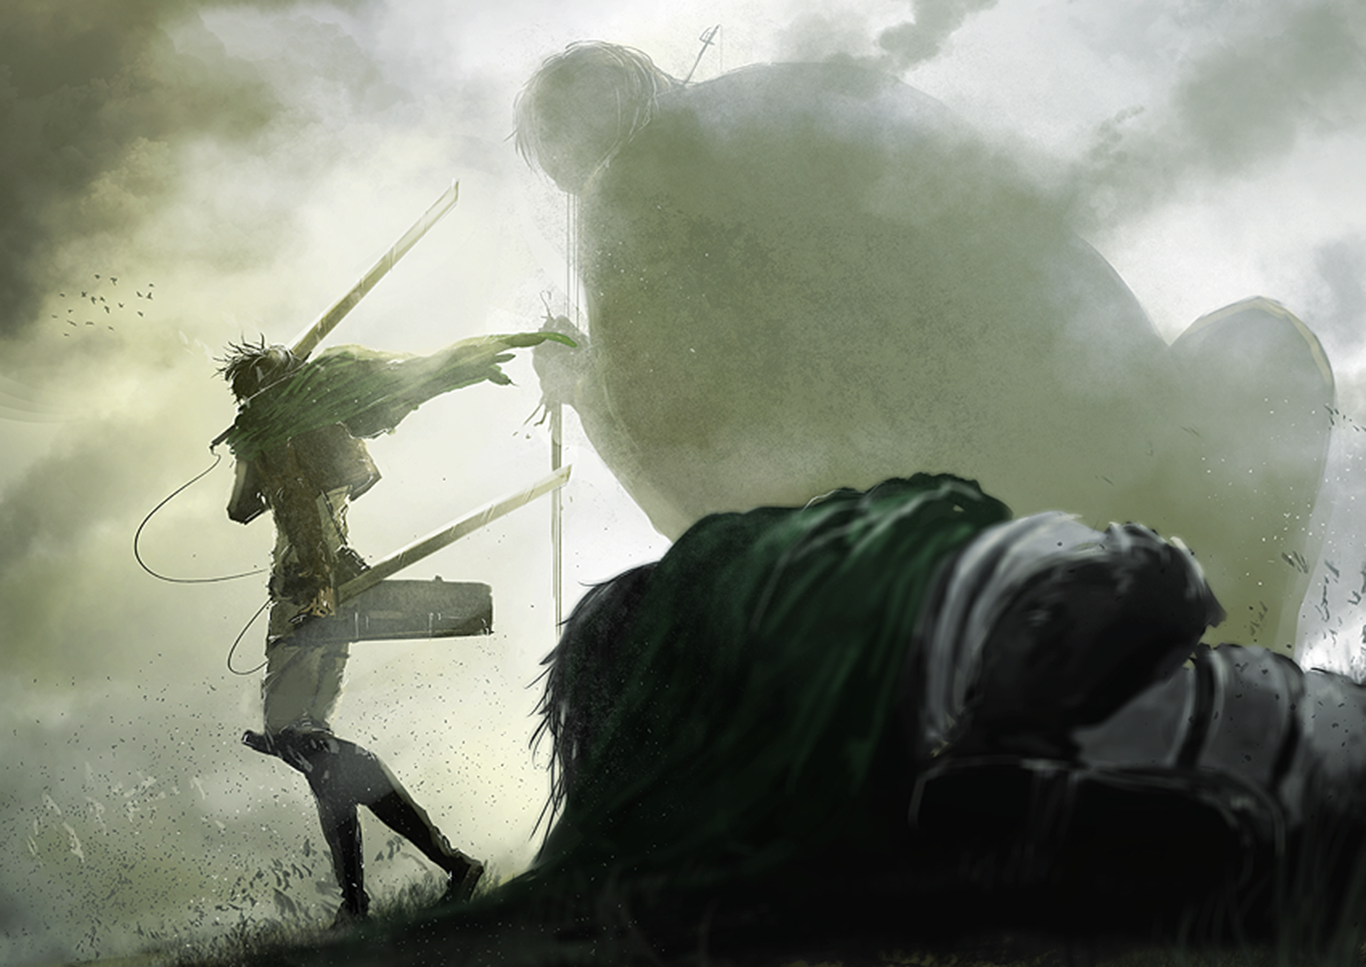 Levi Ackerman Computer Wallpapers Desktop Backgrounds 1366x967 Id 665358 Attack On Titan Anime Attack On Titan Levi Attack On Titan